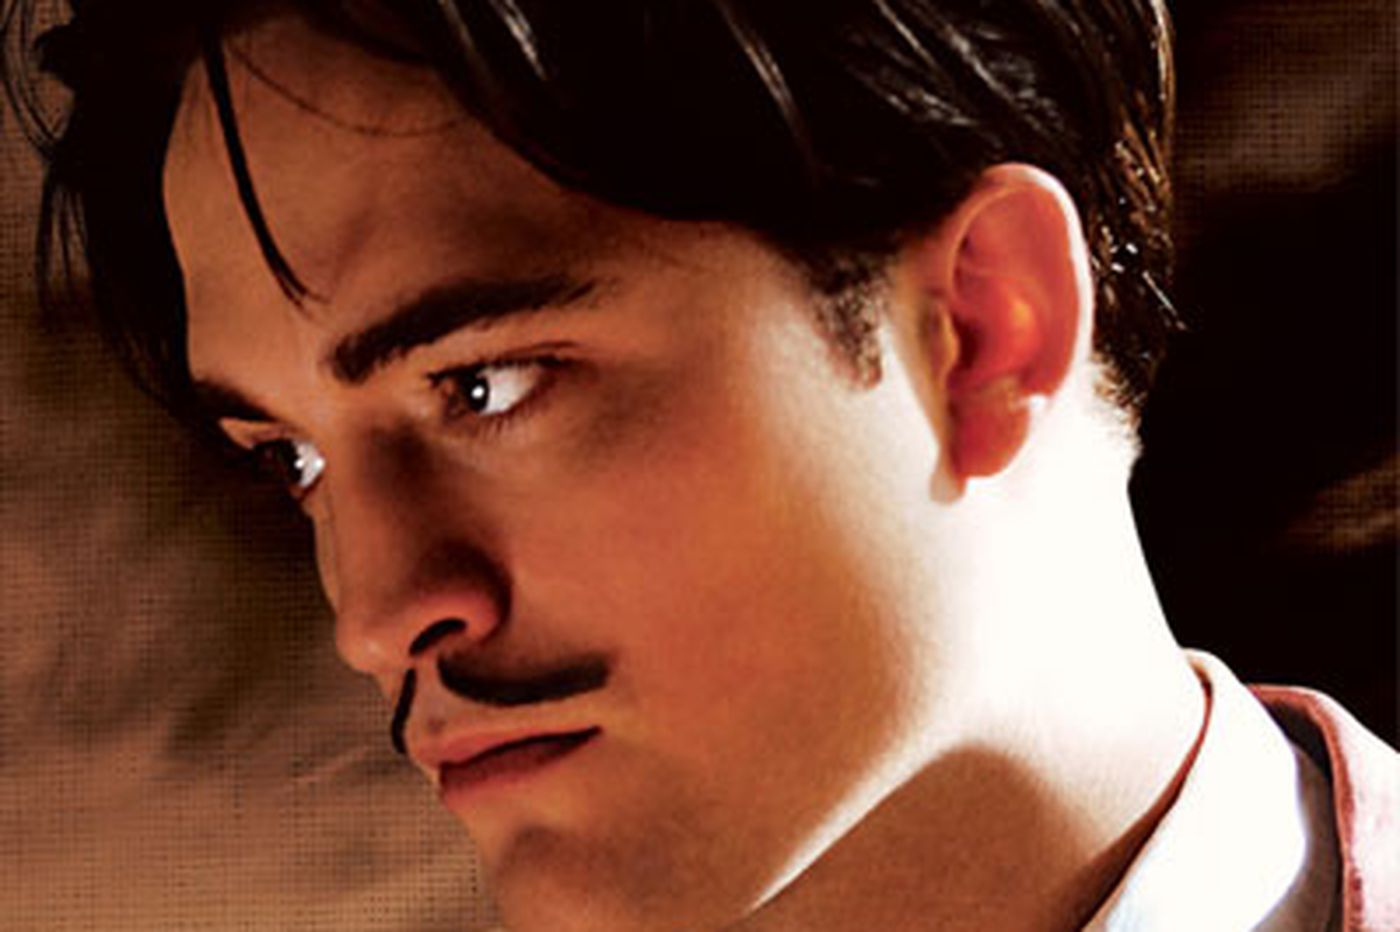 'Little Ashes': Dalí and Lorca in love